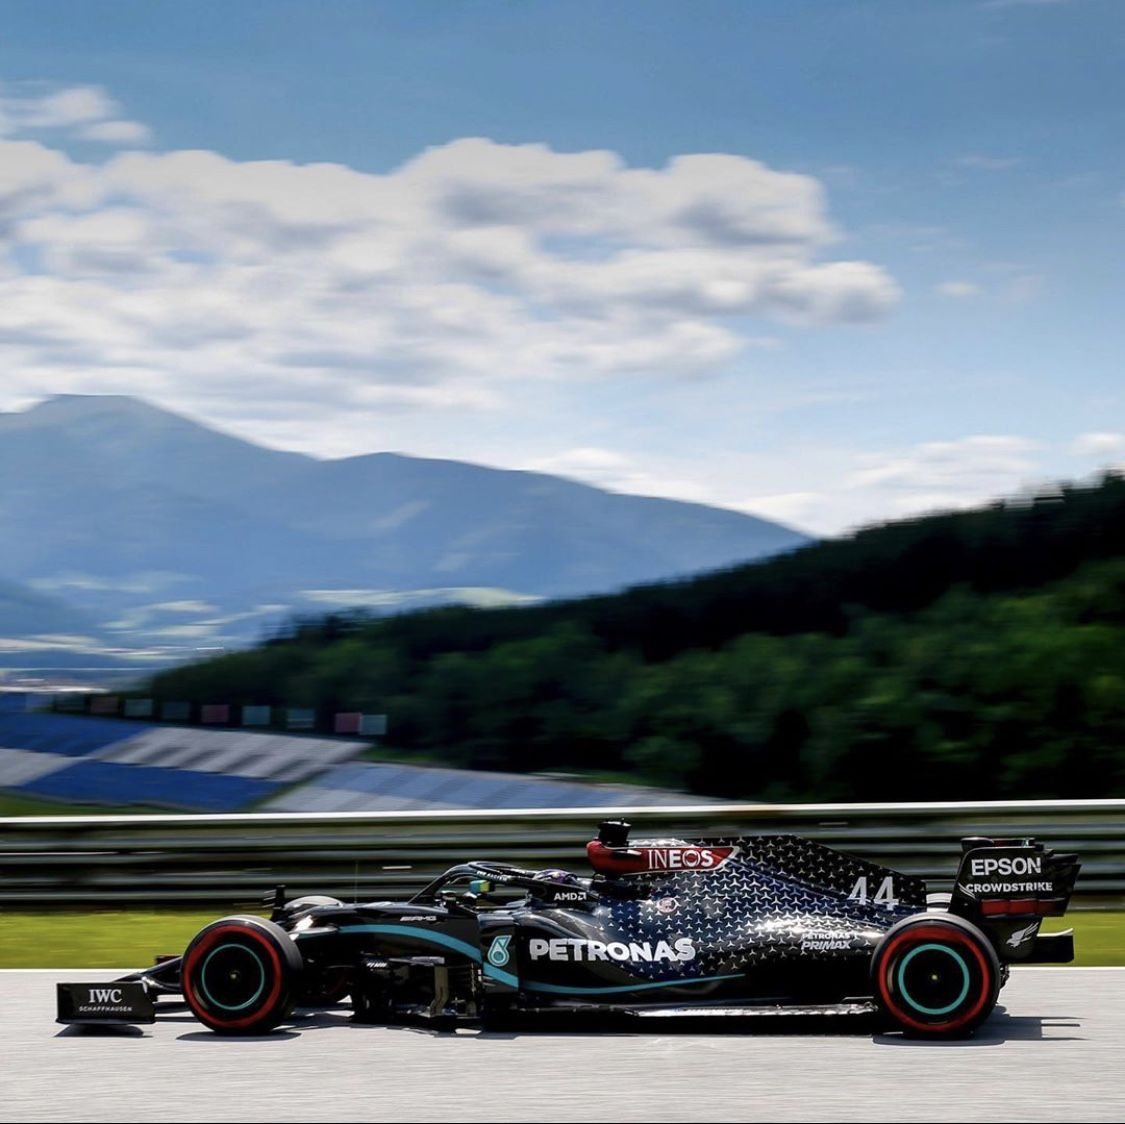 Pin by Byron Norman on LH in 2020 Lewis hamilton formula